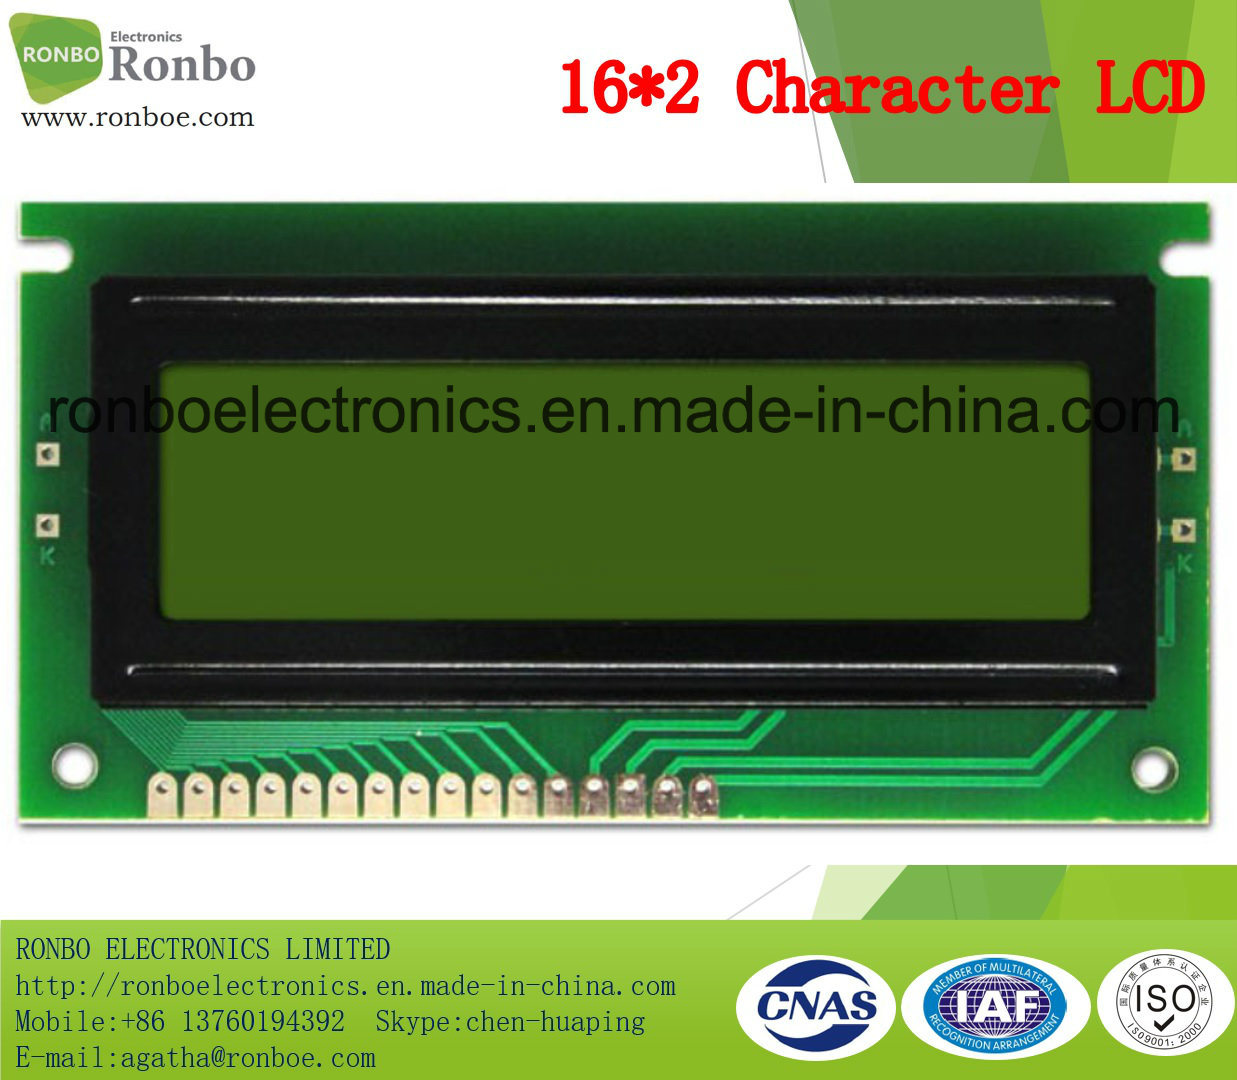 16X2 Stn Character LCM Display, MCU 8bit, Y-G Backlight, COB LCM Screen